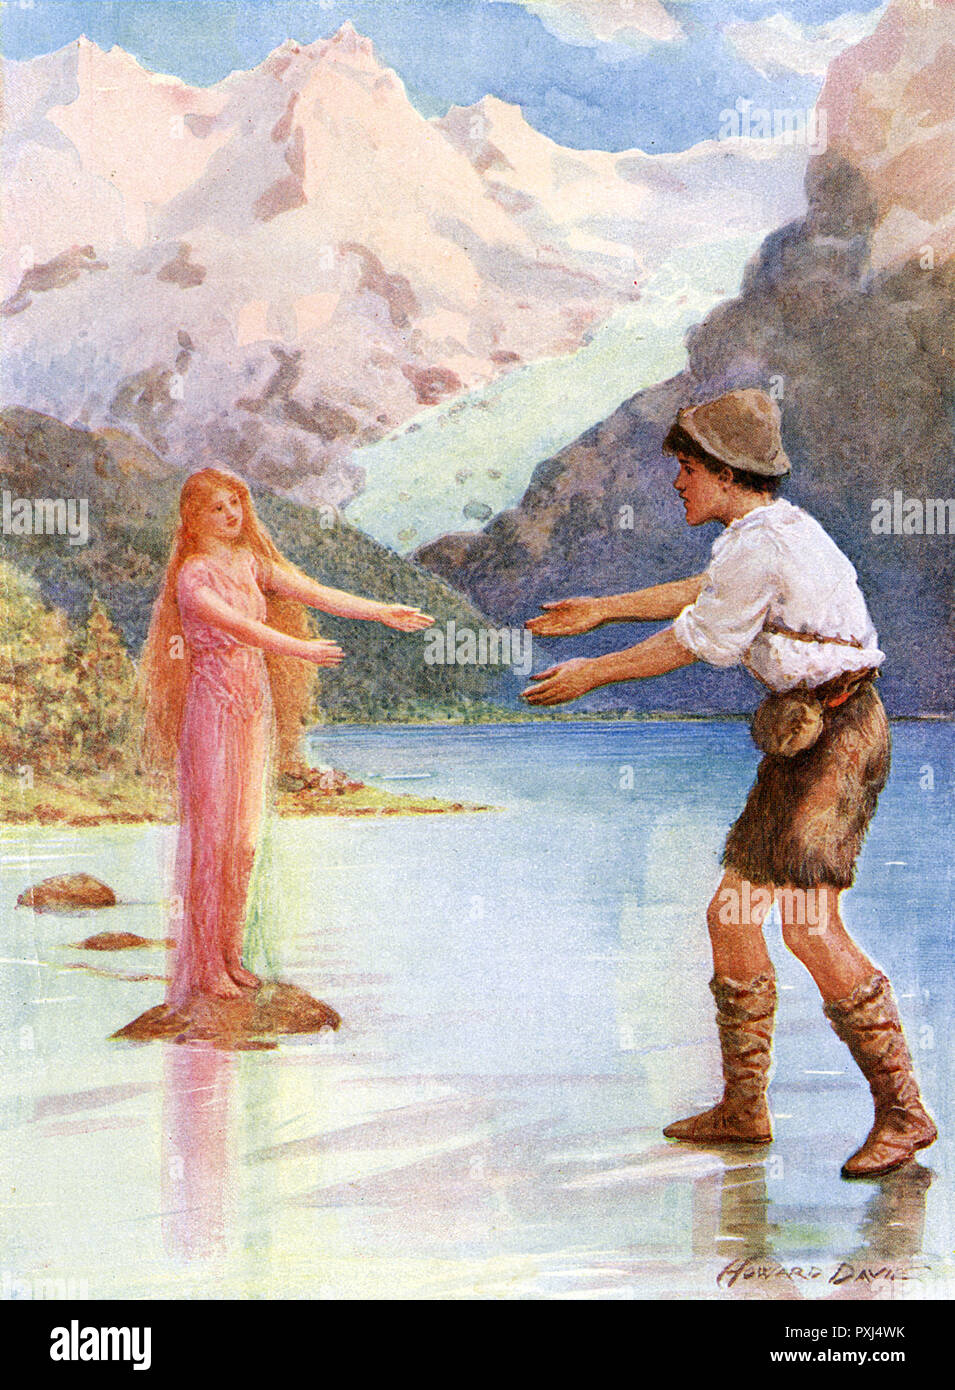 Water nymphs have magic powers - they can make it possible for mortals to walk across water, when it suits them... but beware the consequences if they ensnare you !     Date: circa 1900 - Stock Image